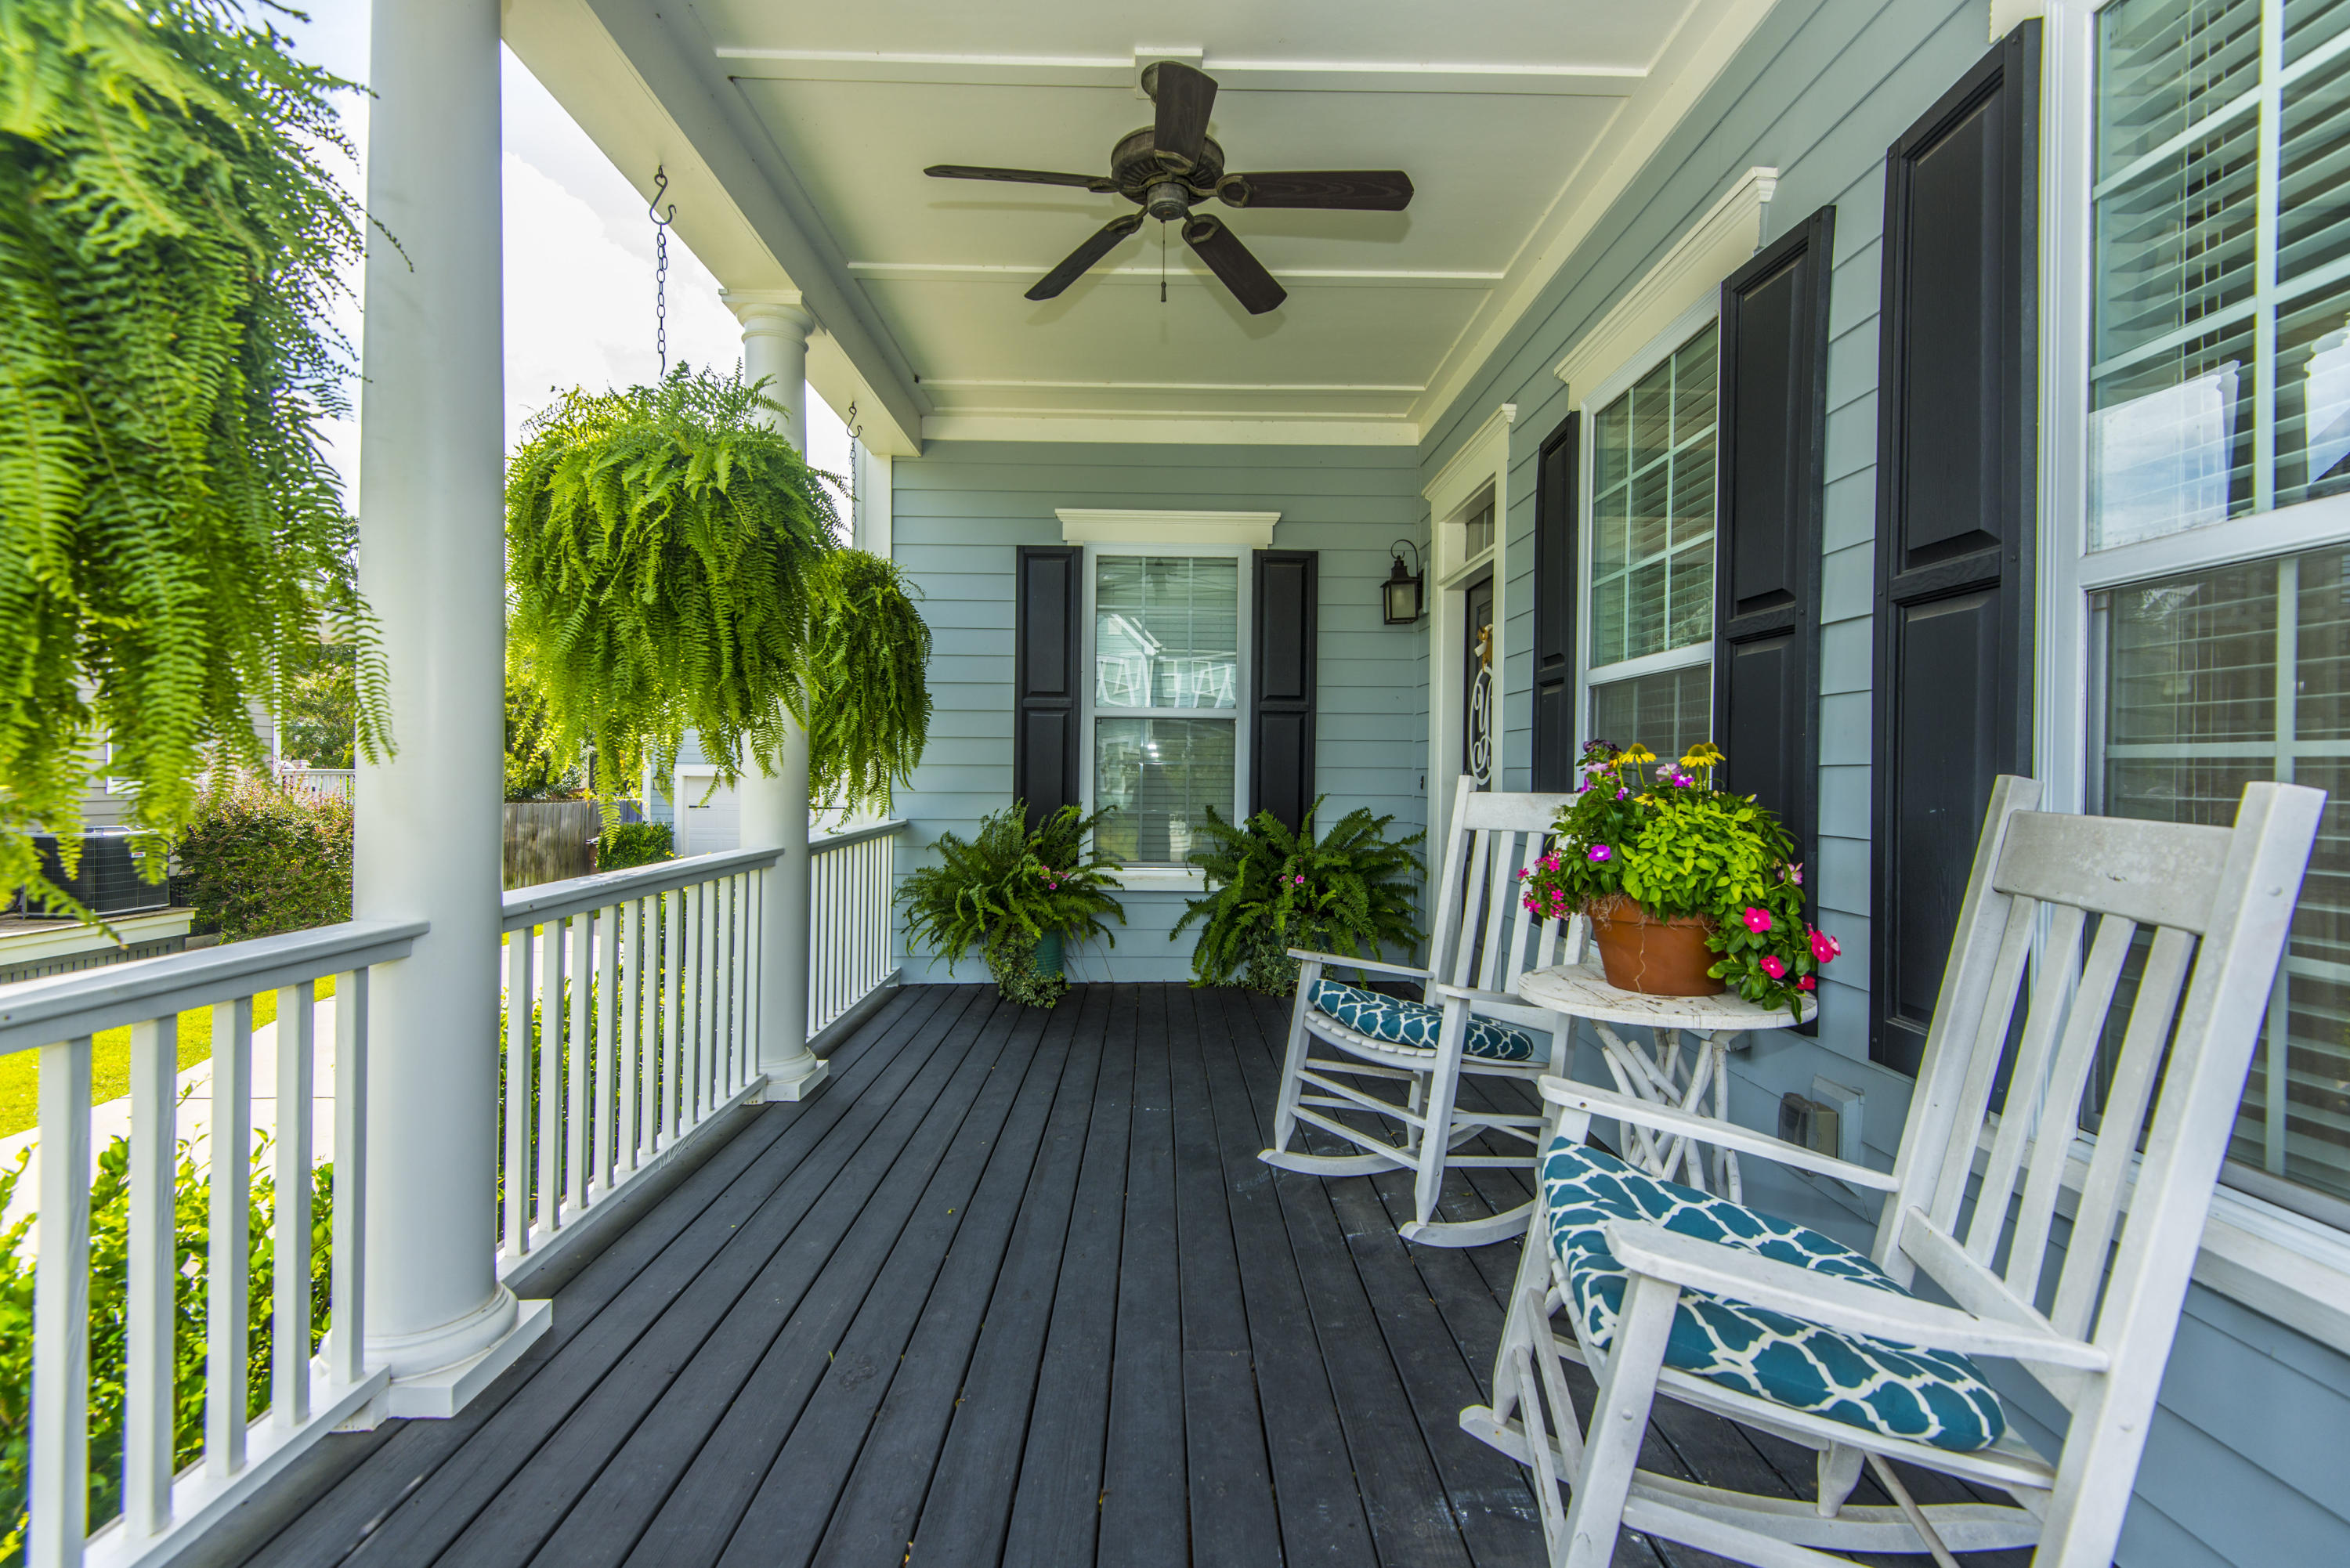 Cloudbreak Court Homes For Sale - 627 Cloudbreak, Charleston, SC - 0